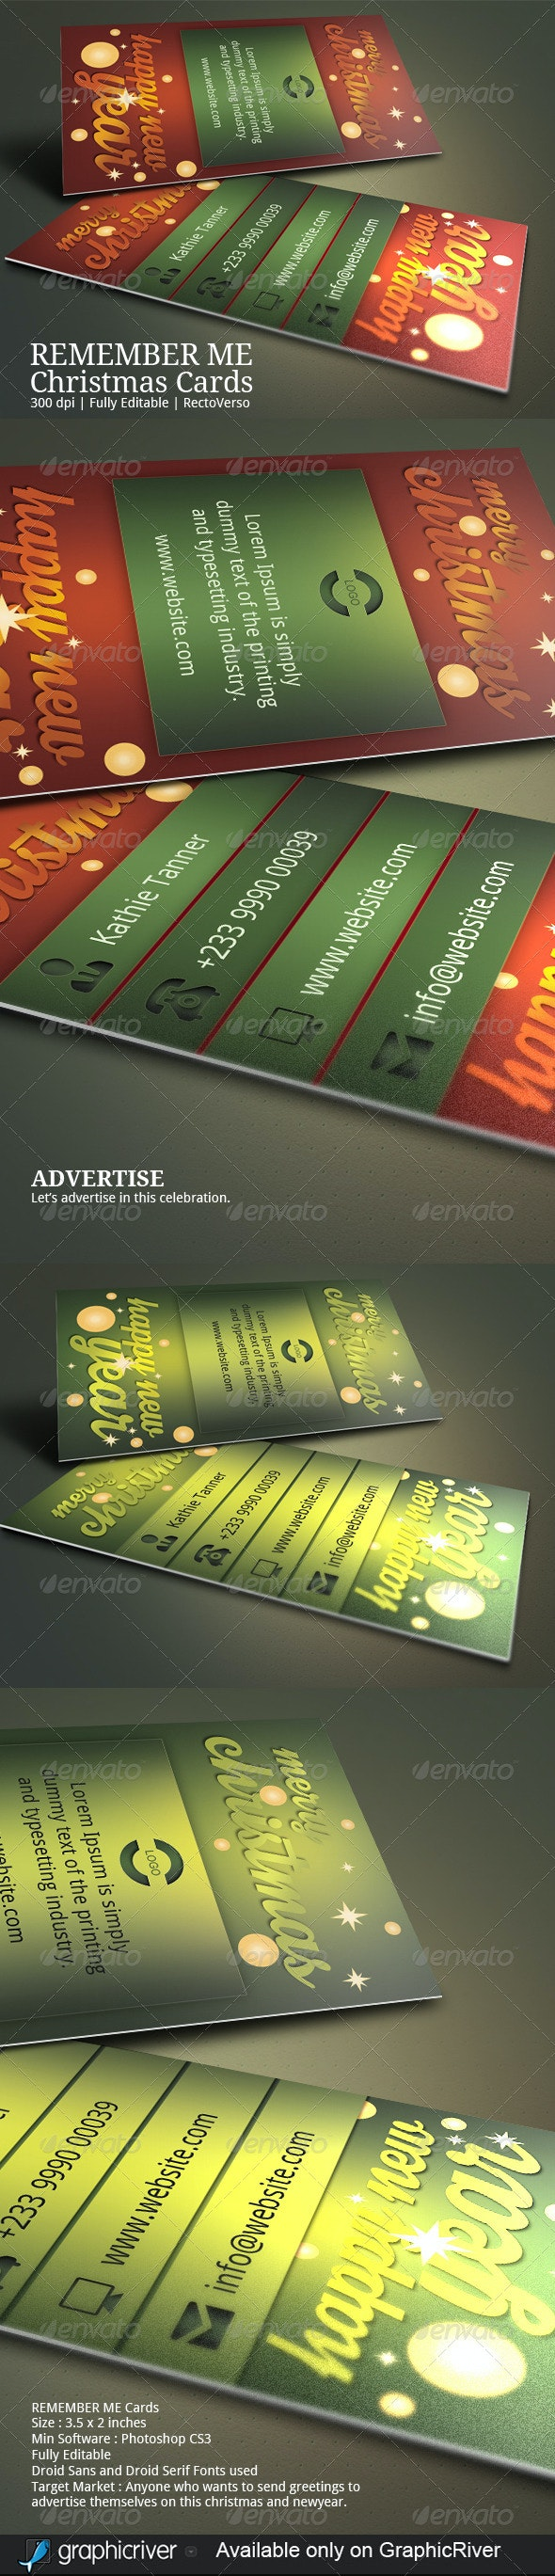 Christmas Greeting Business Card - Greeting Cards Cards & Invites